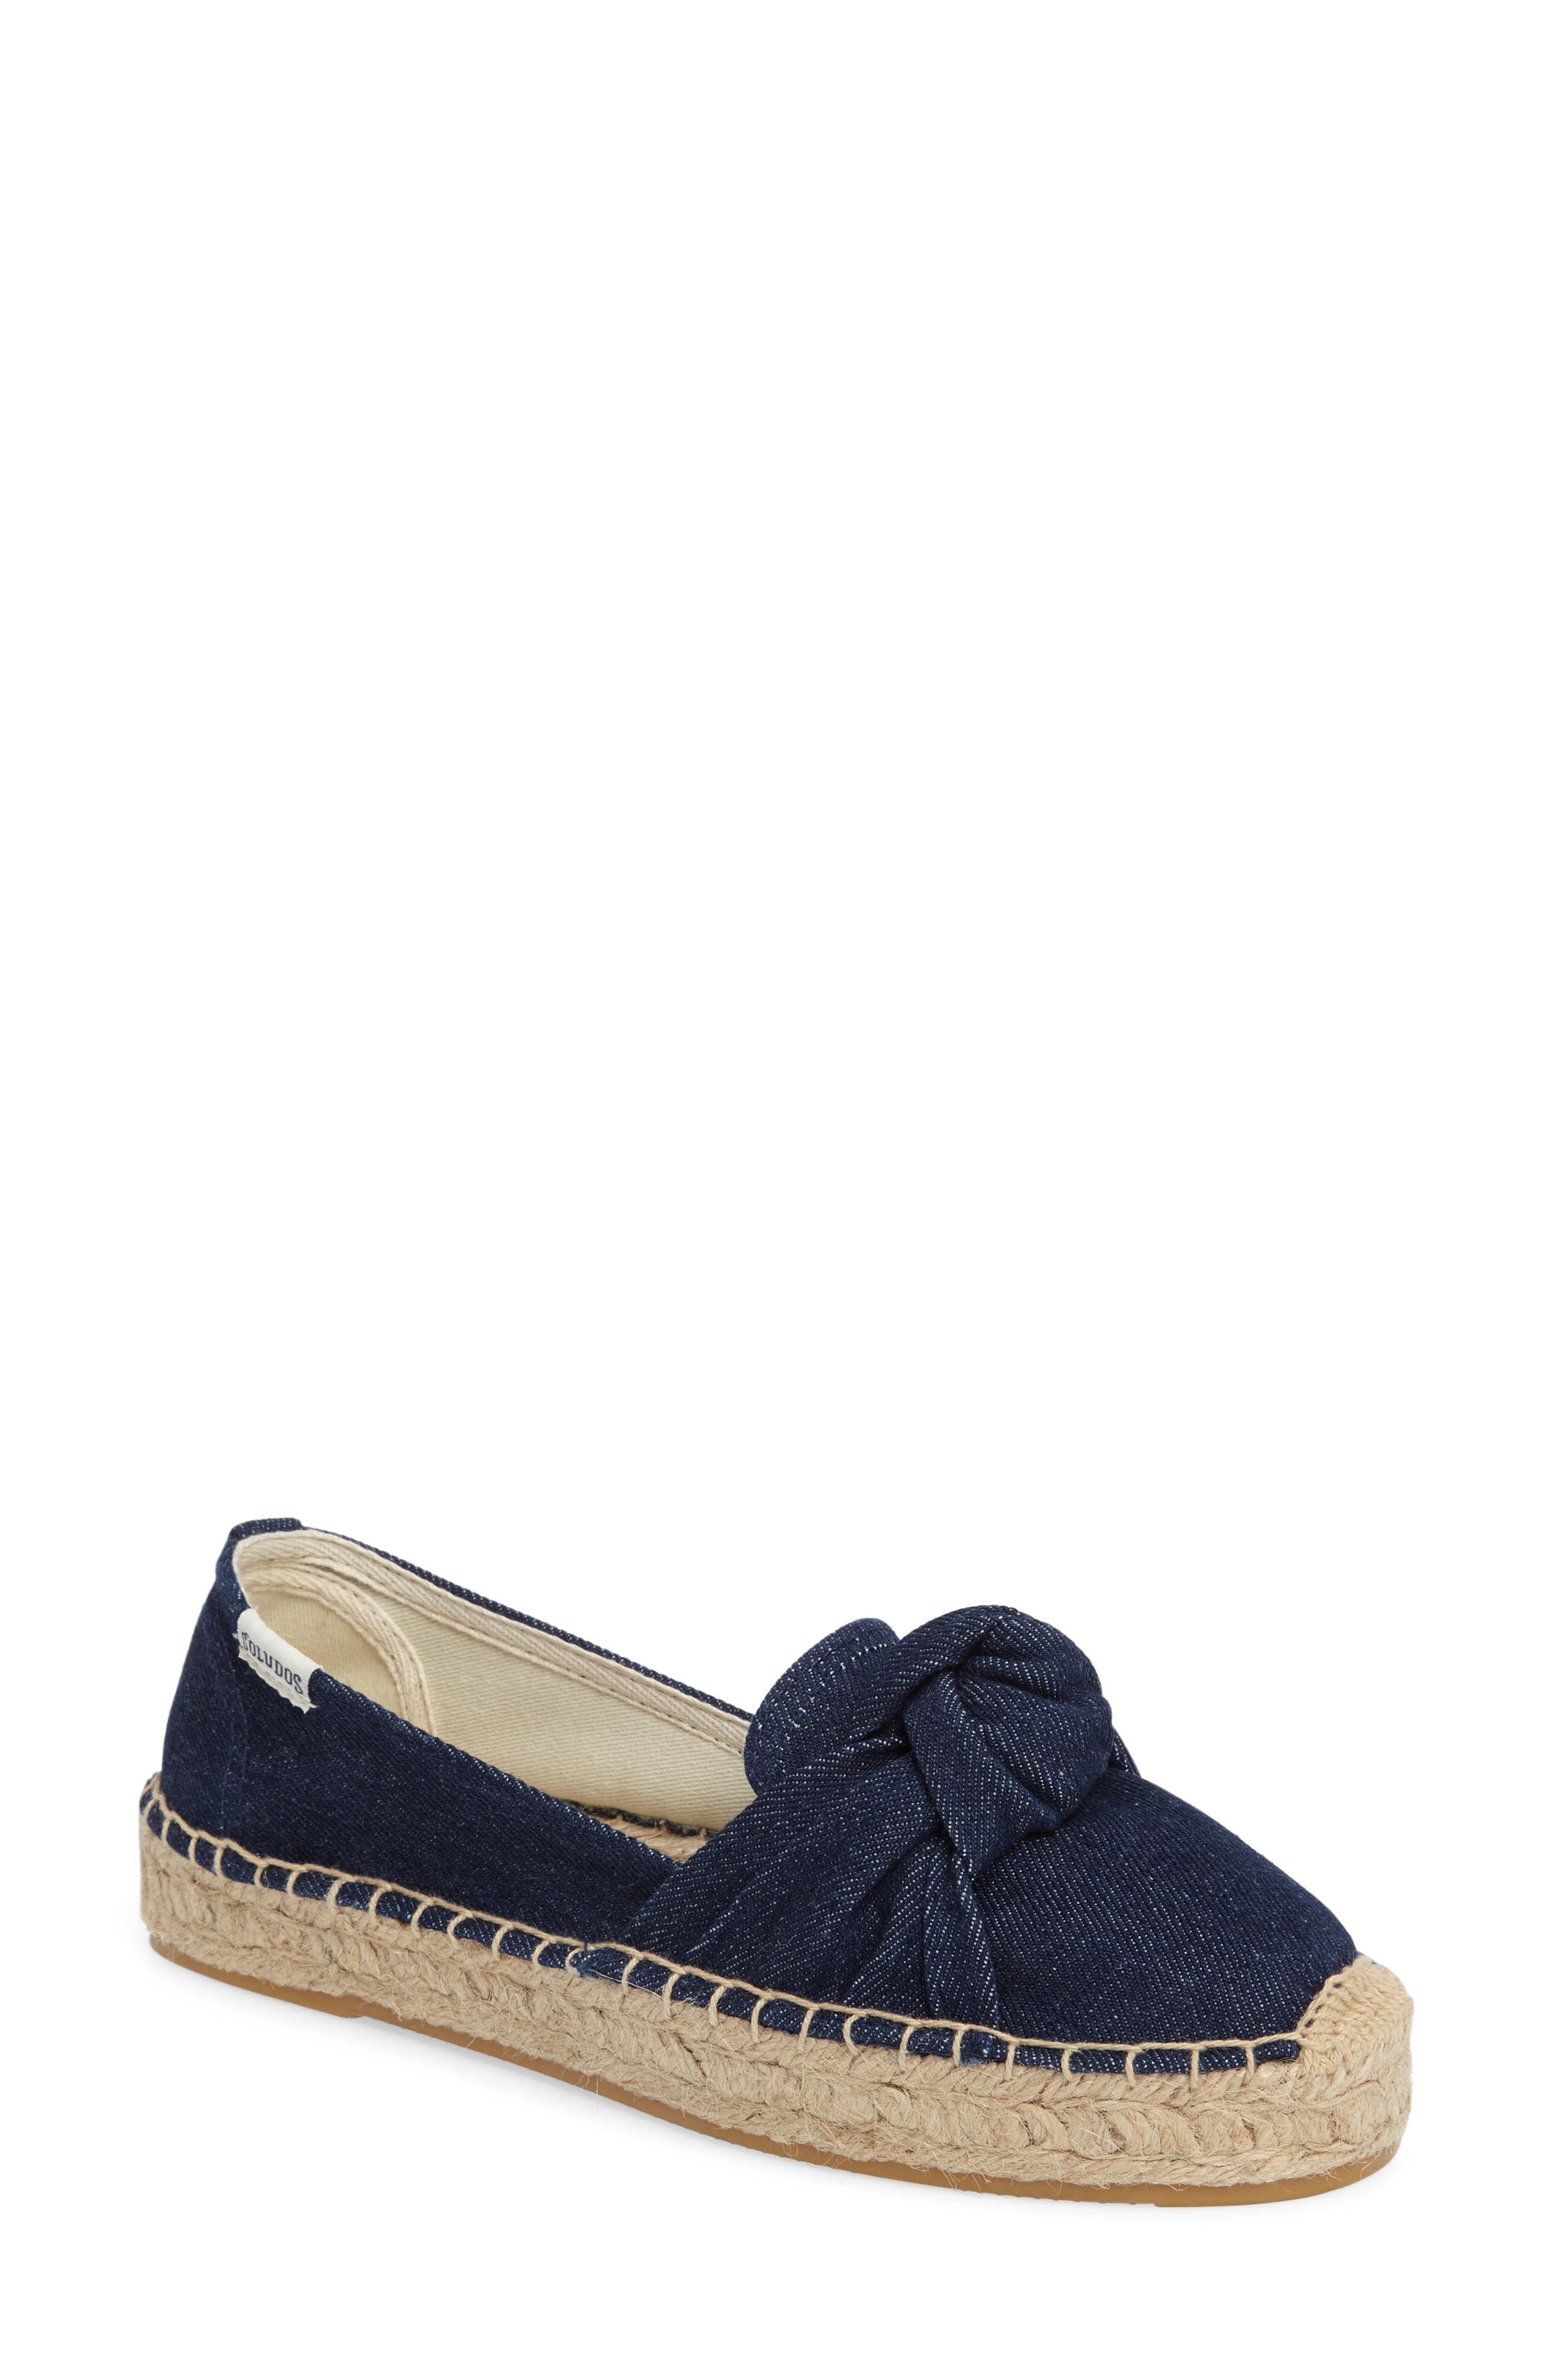 Soludos Knotted Smoking Slipper Flat (Women)